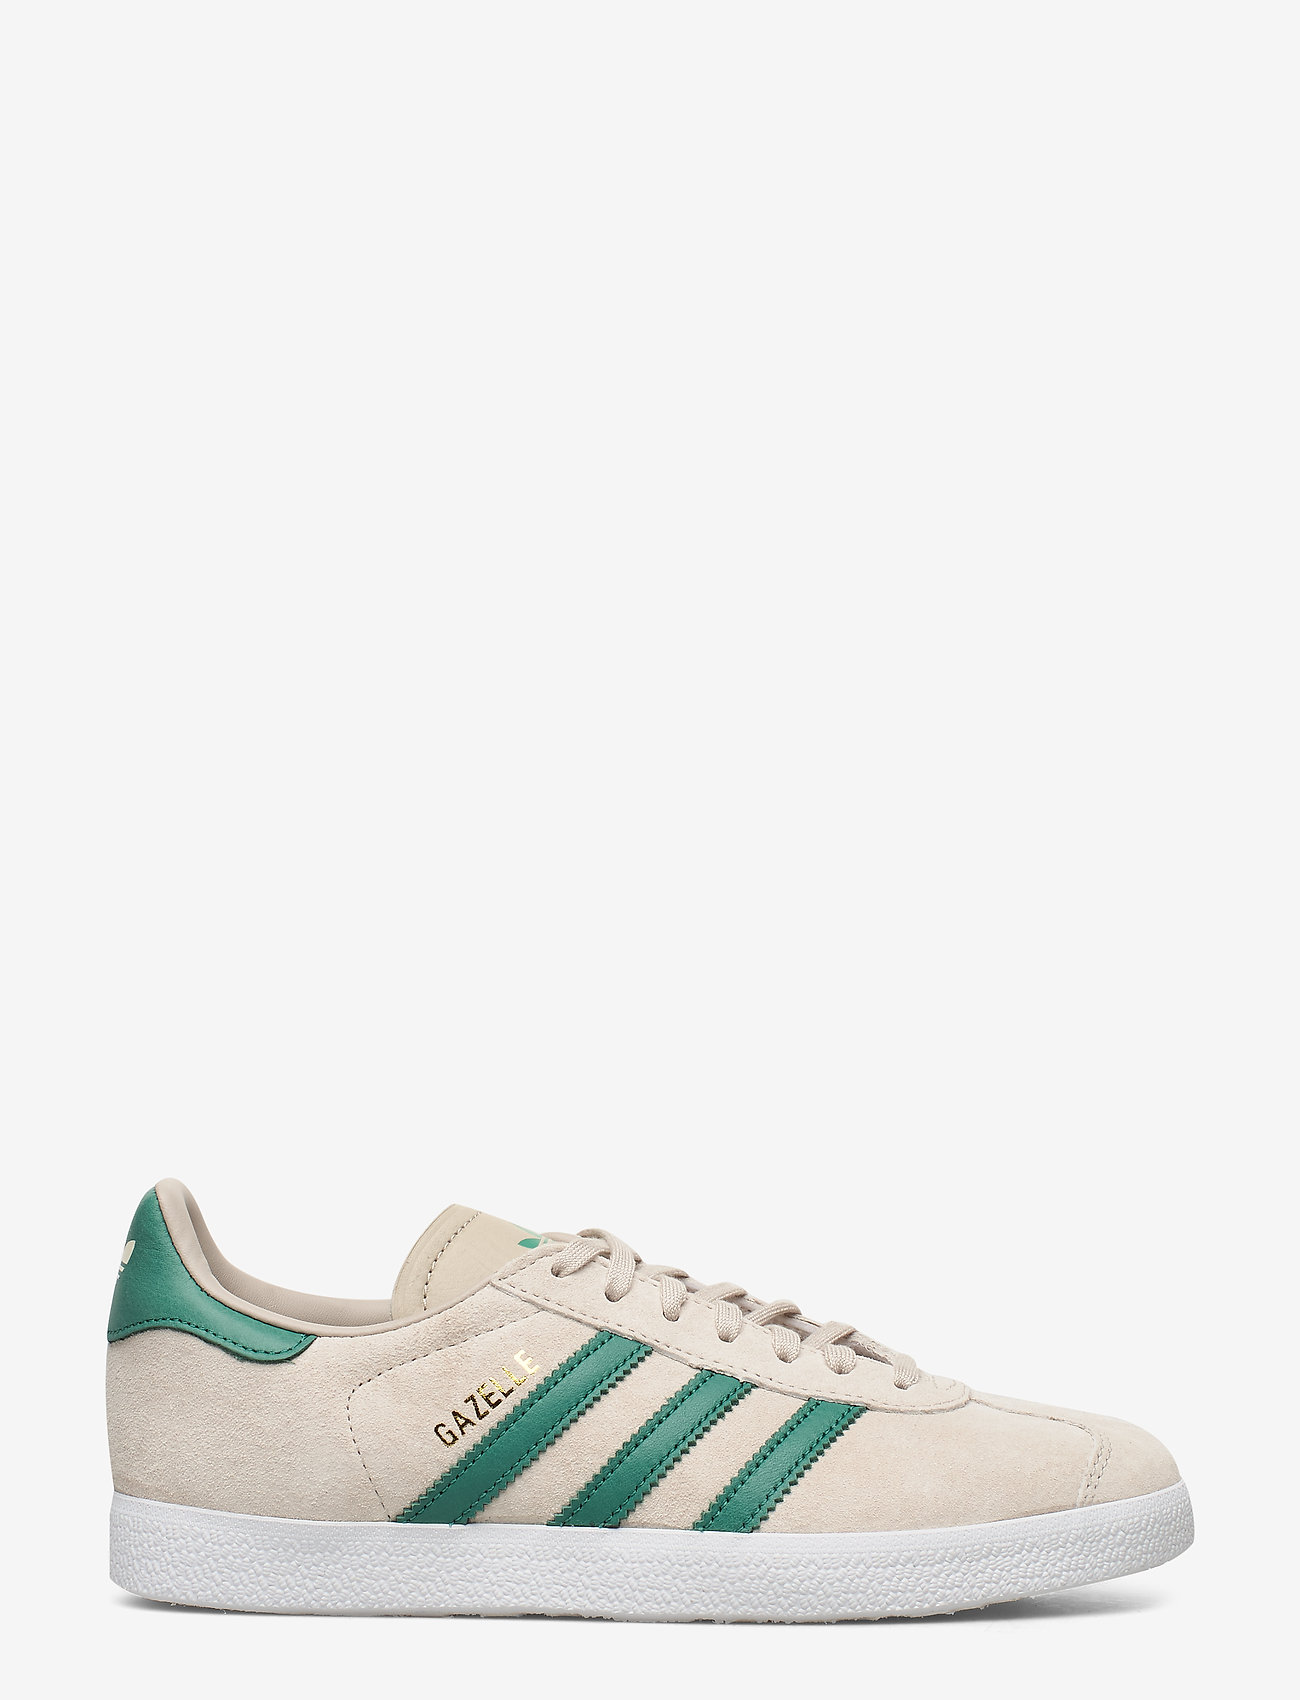 Adidas Originals Gazelle W - Baskets